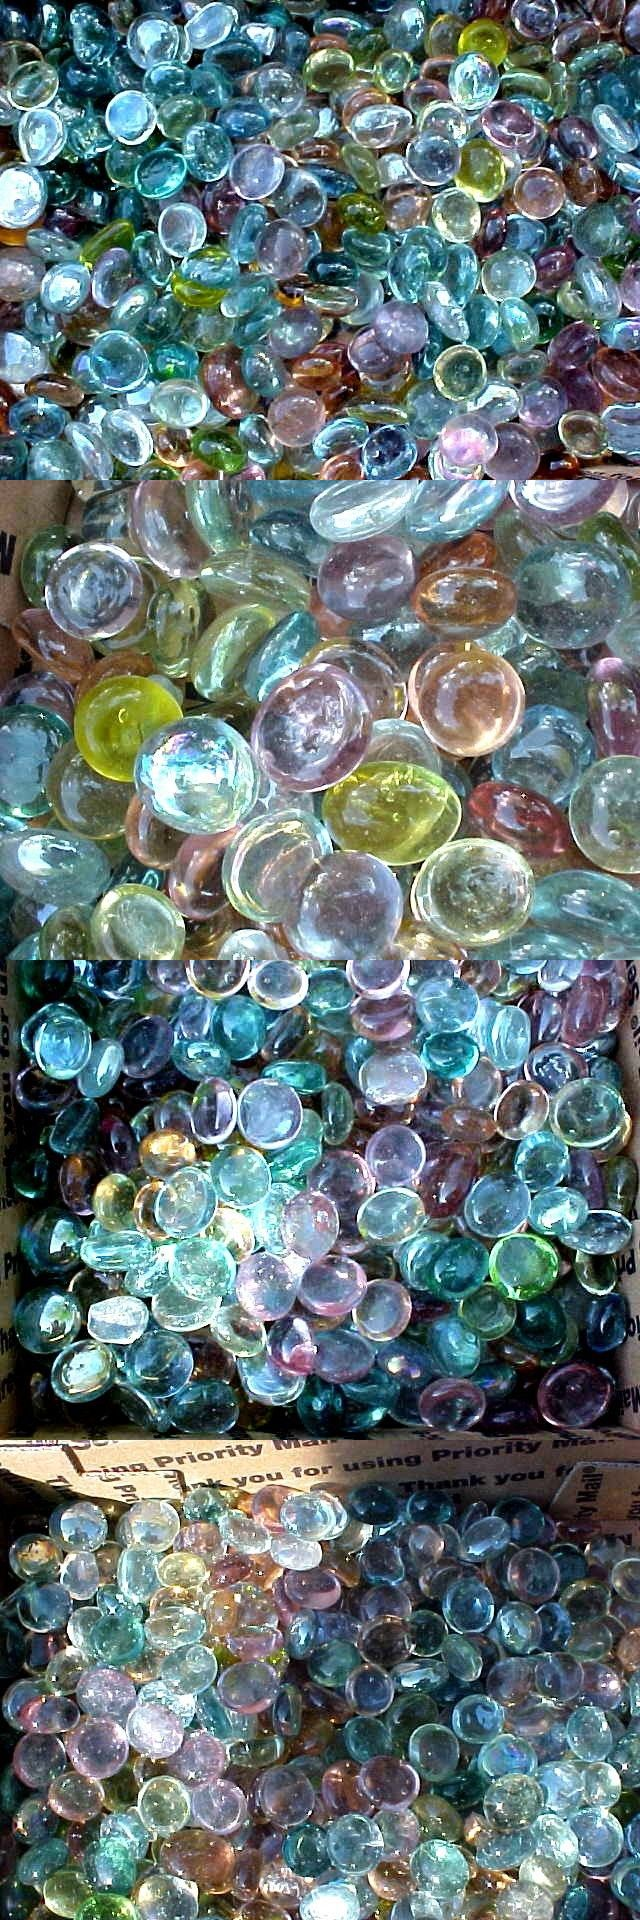 10 Lbs Pastel Flat Glass Marbles Gems Vase Fllers Fish Tank Mosaic 21 99 Glass Art Glass Marbles Art